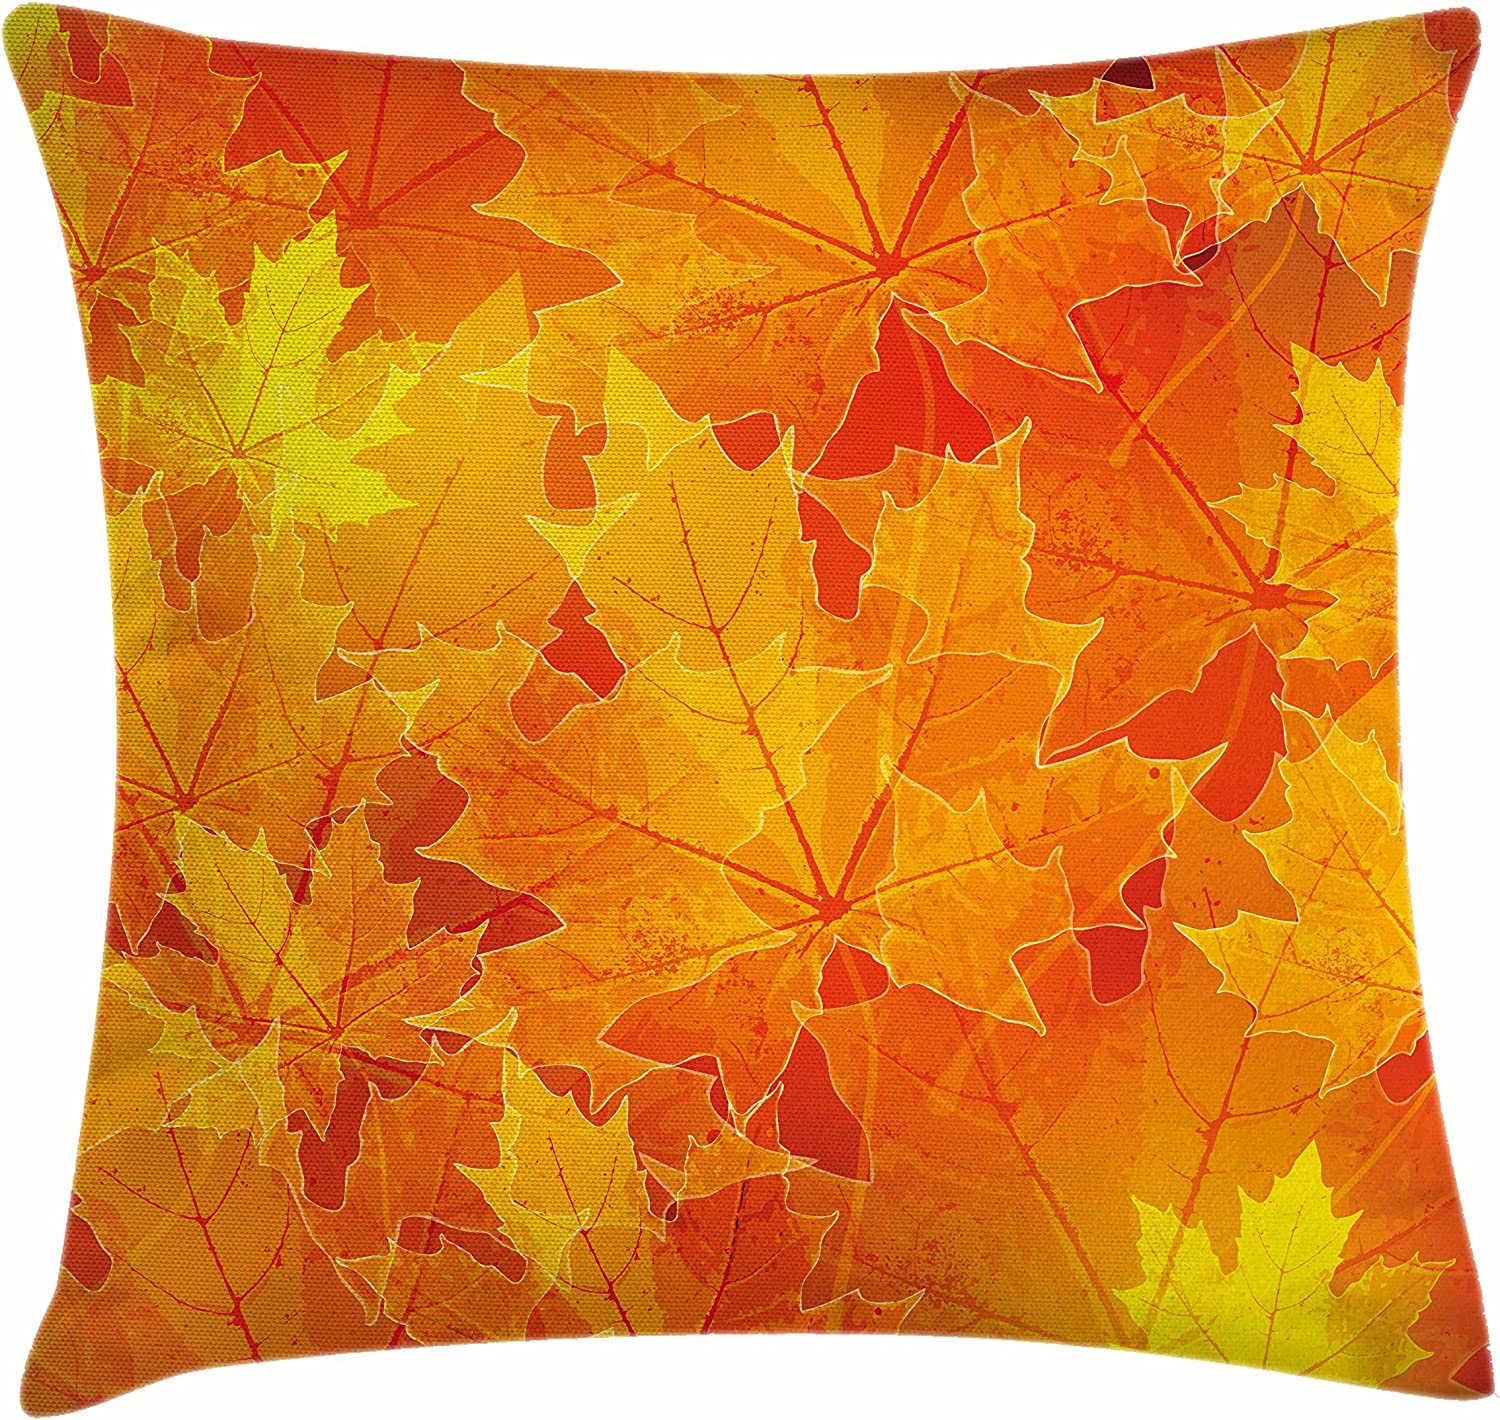 "Ambesonne Fall Throw Pillow Cushion Cover, Seasonal Maple Tree Leaves Botanical Foliage Vibrant Floral Forest Texture Image, Decorative Square Accent Pillow Case, 24"" X 24"", Mustard Orange"